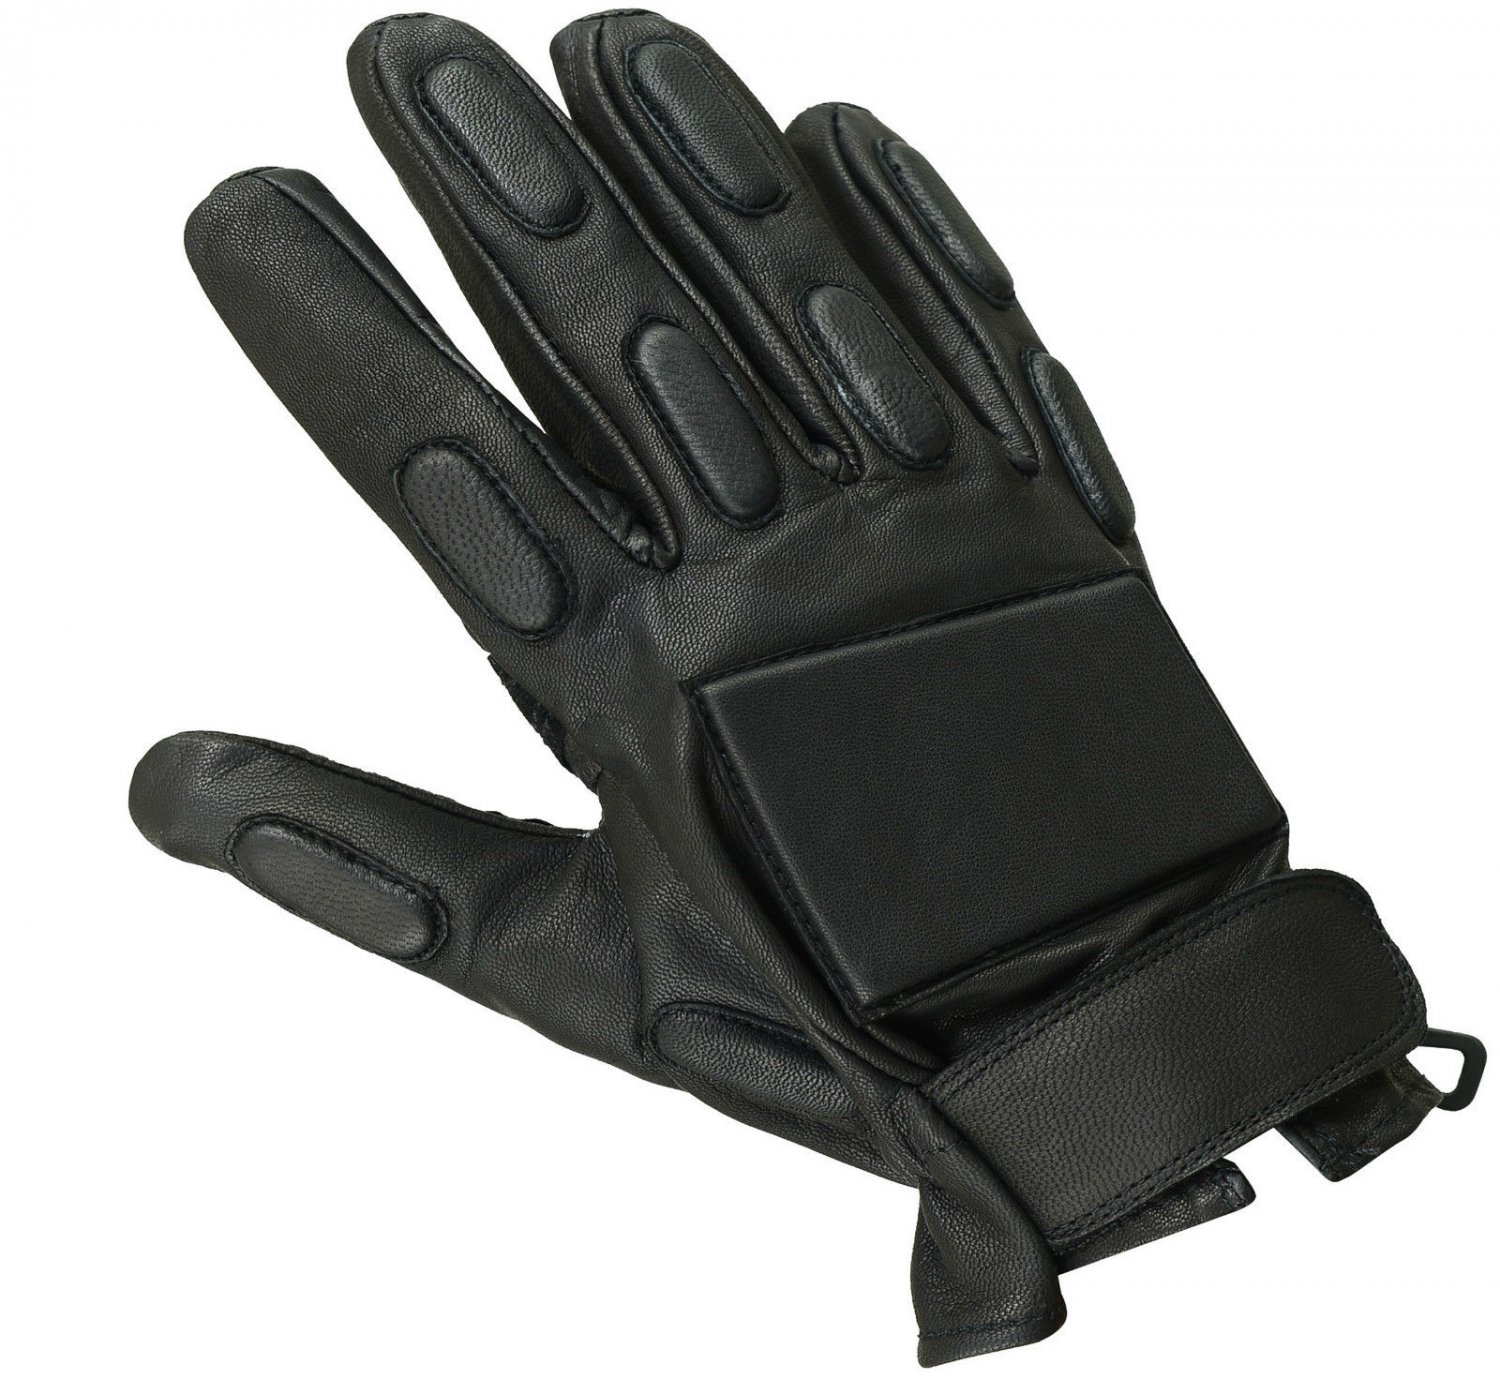 Police Leather Glove Tactical Riot Military Security Training Ass